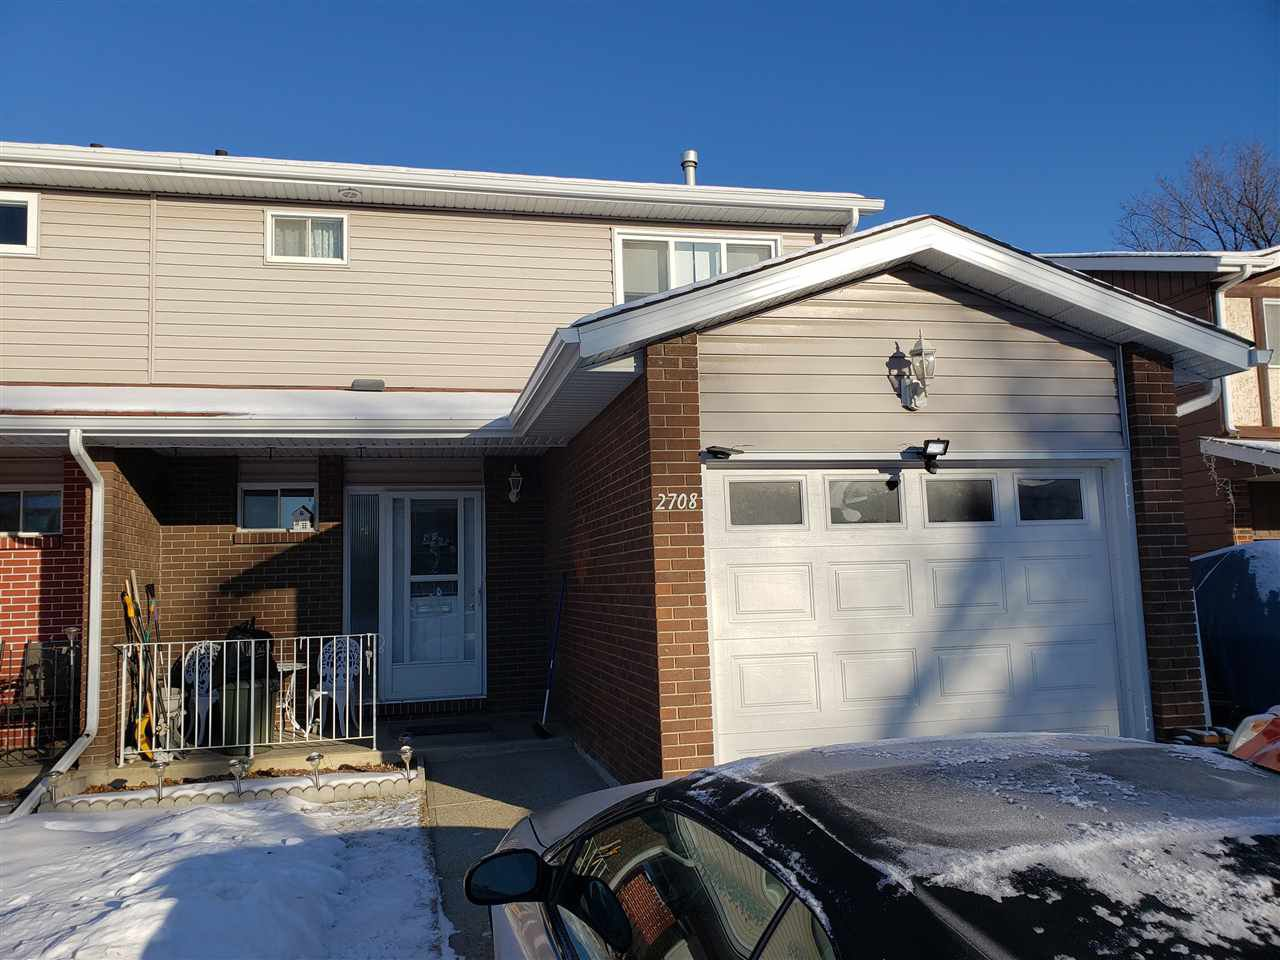 Main Photo: 2708 135 Avenue in Edmonton: Zone 35 House Half Duplex for sale : MLS®# E4182823